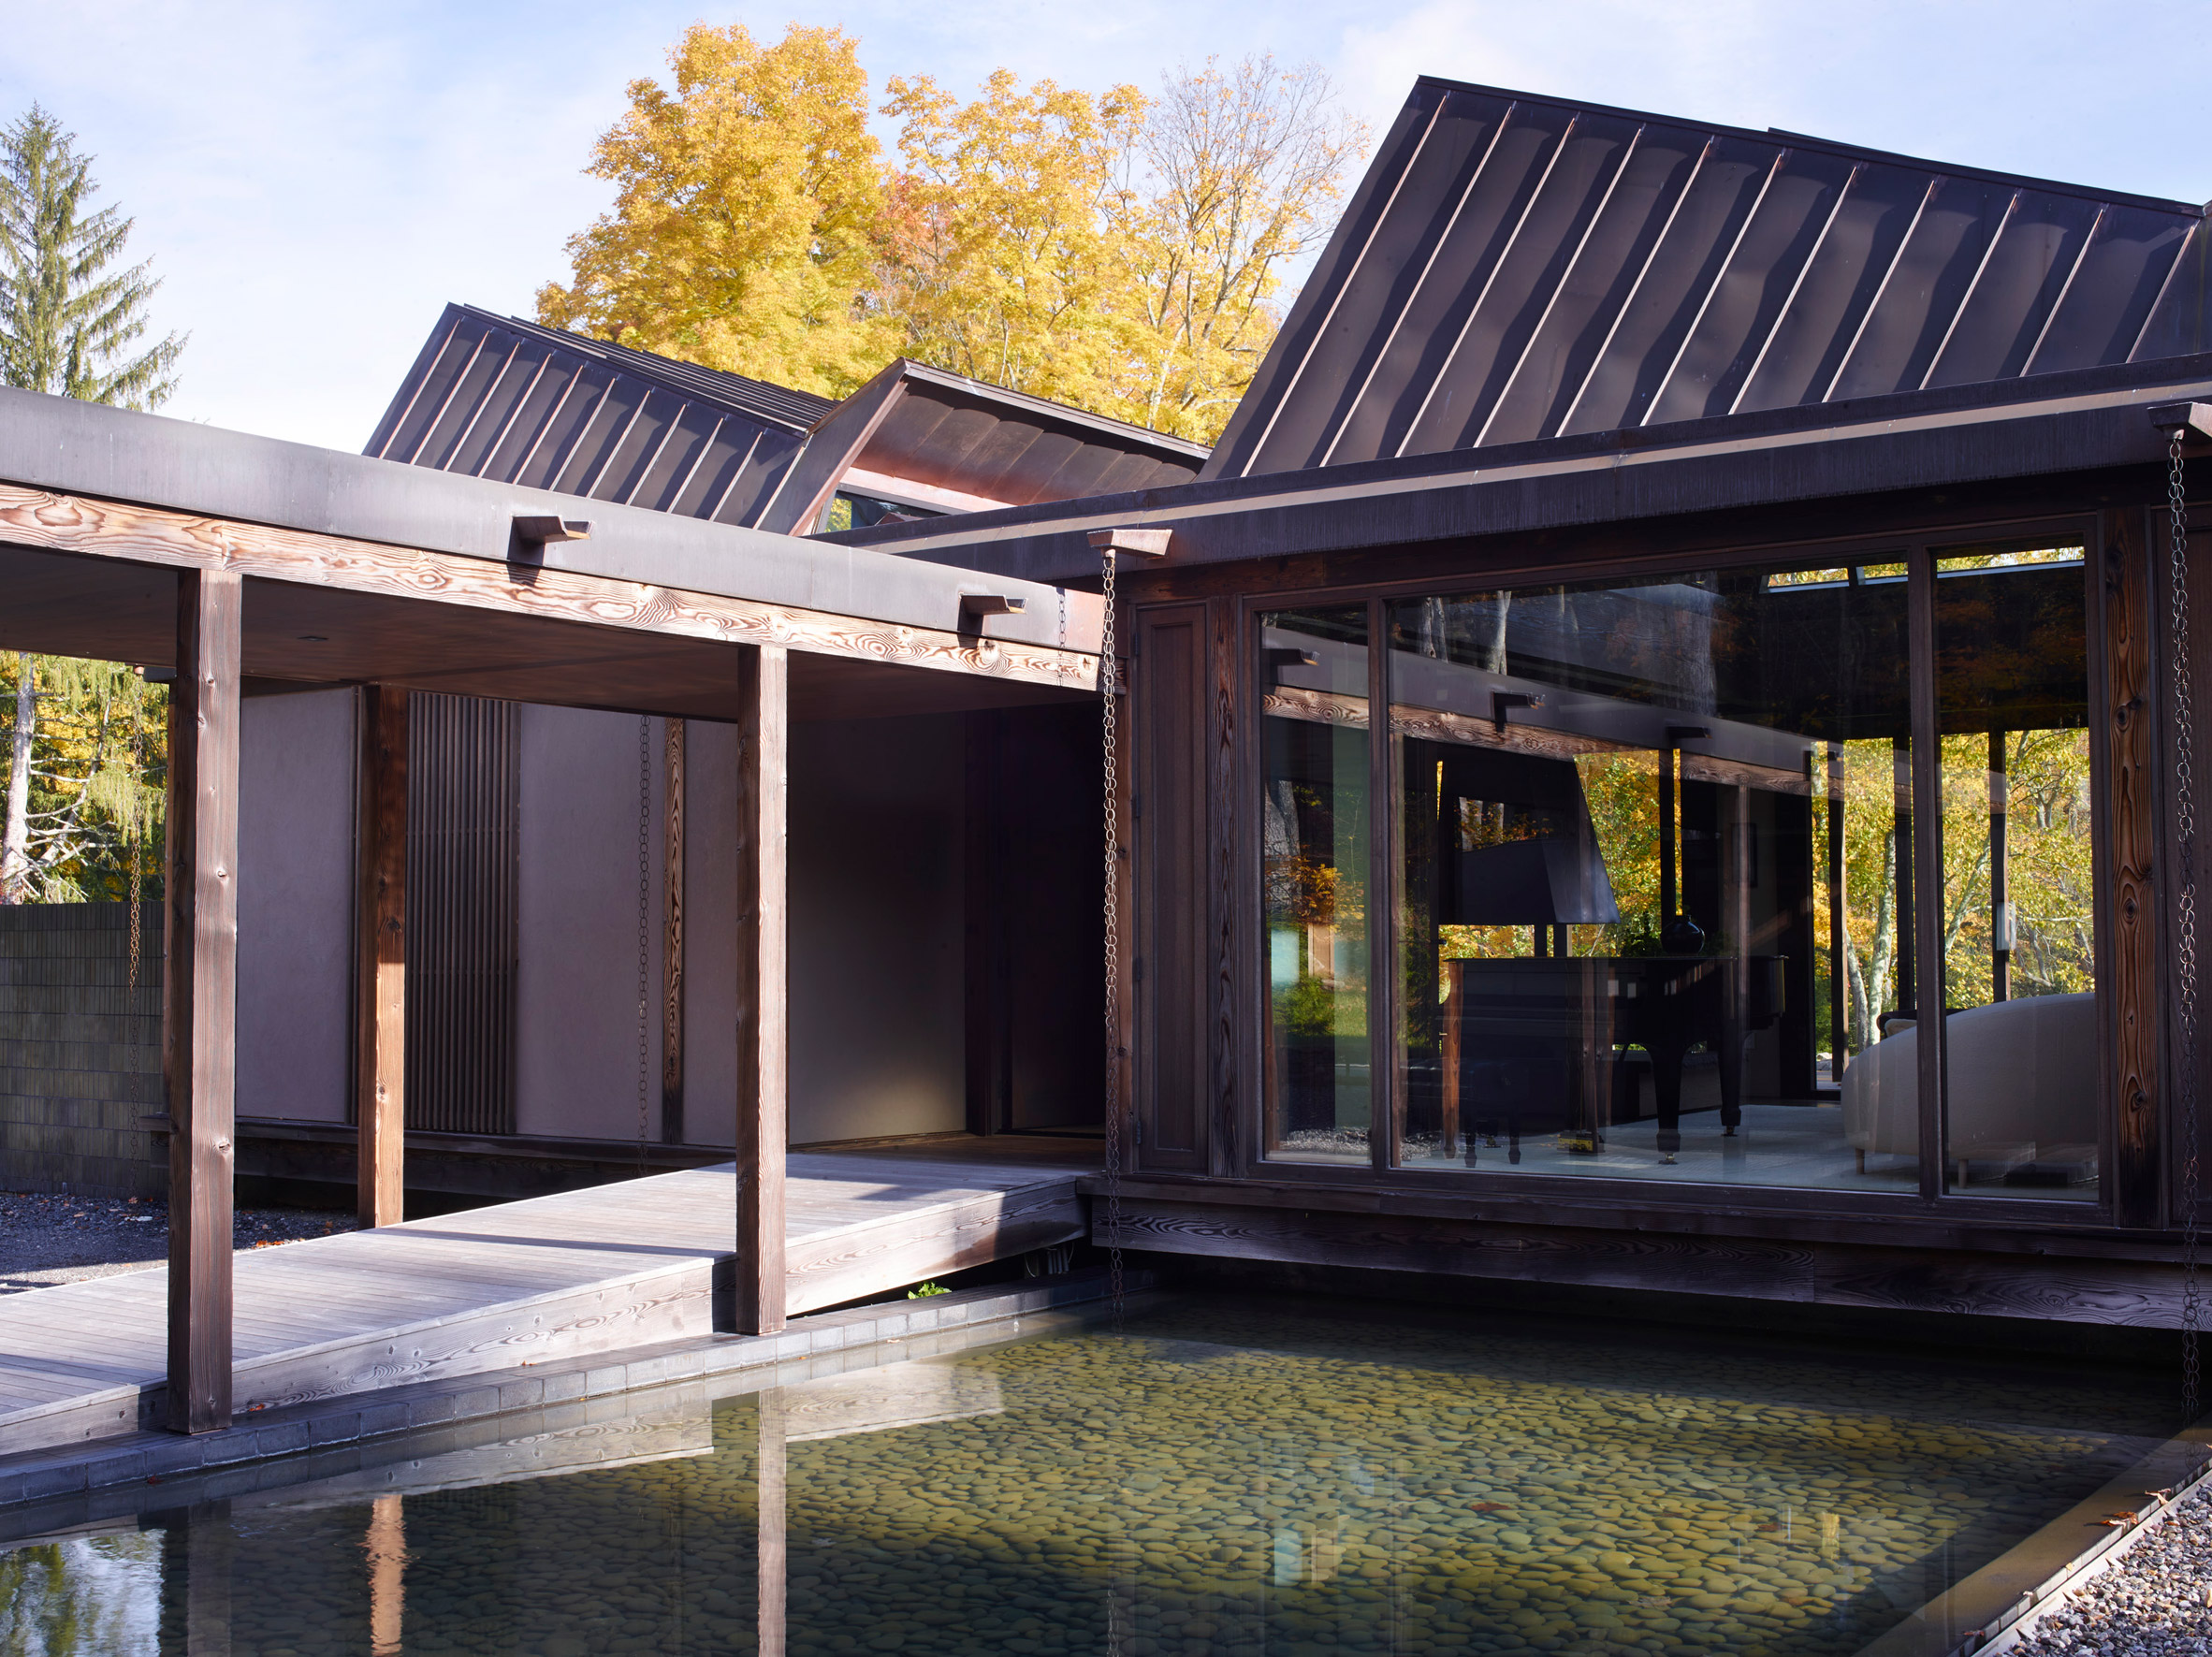 House clad in slate shingles by Telha Clarke features glazed gable end